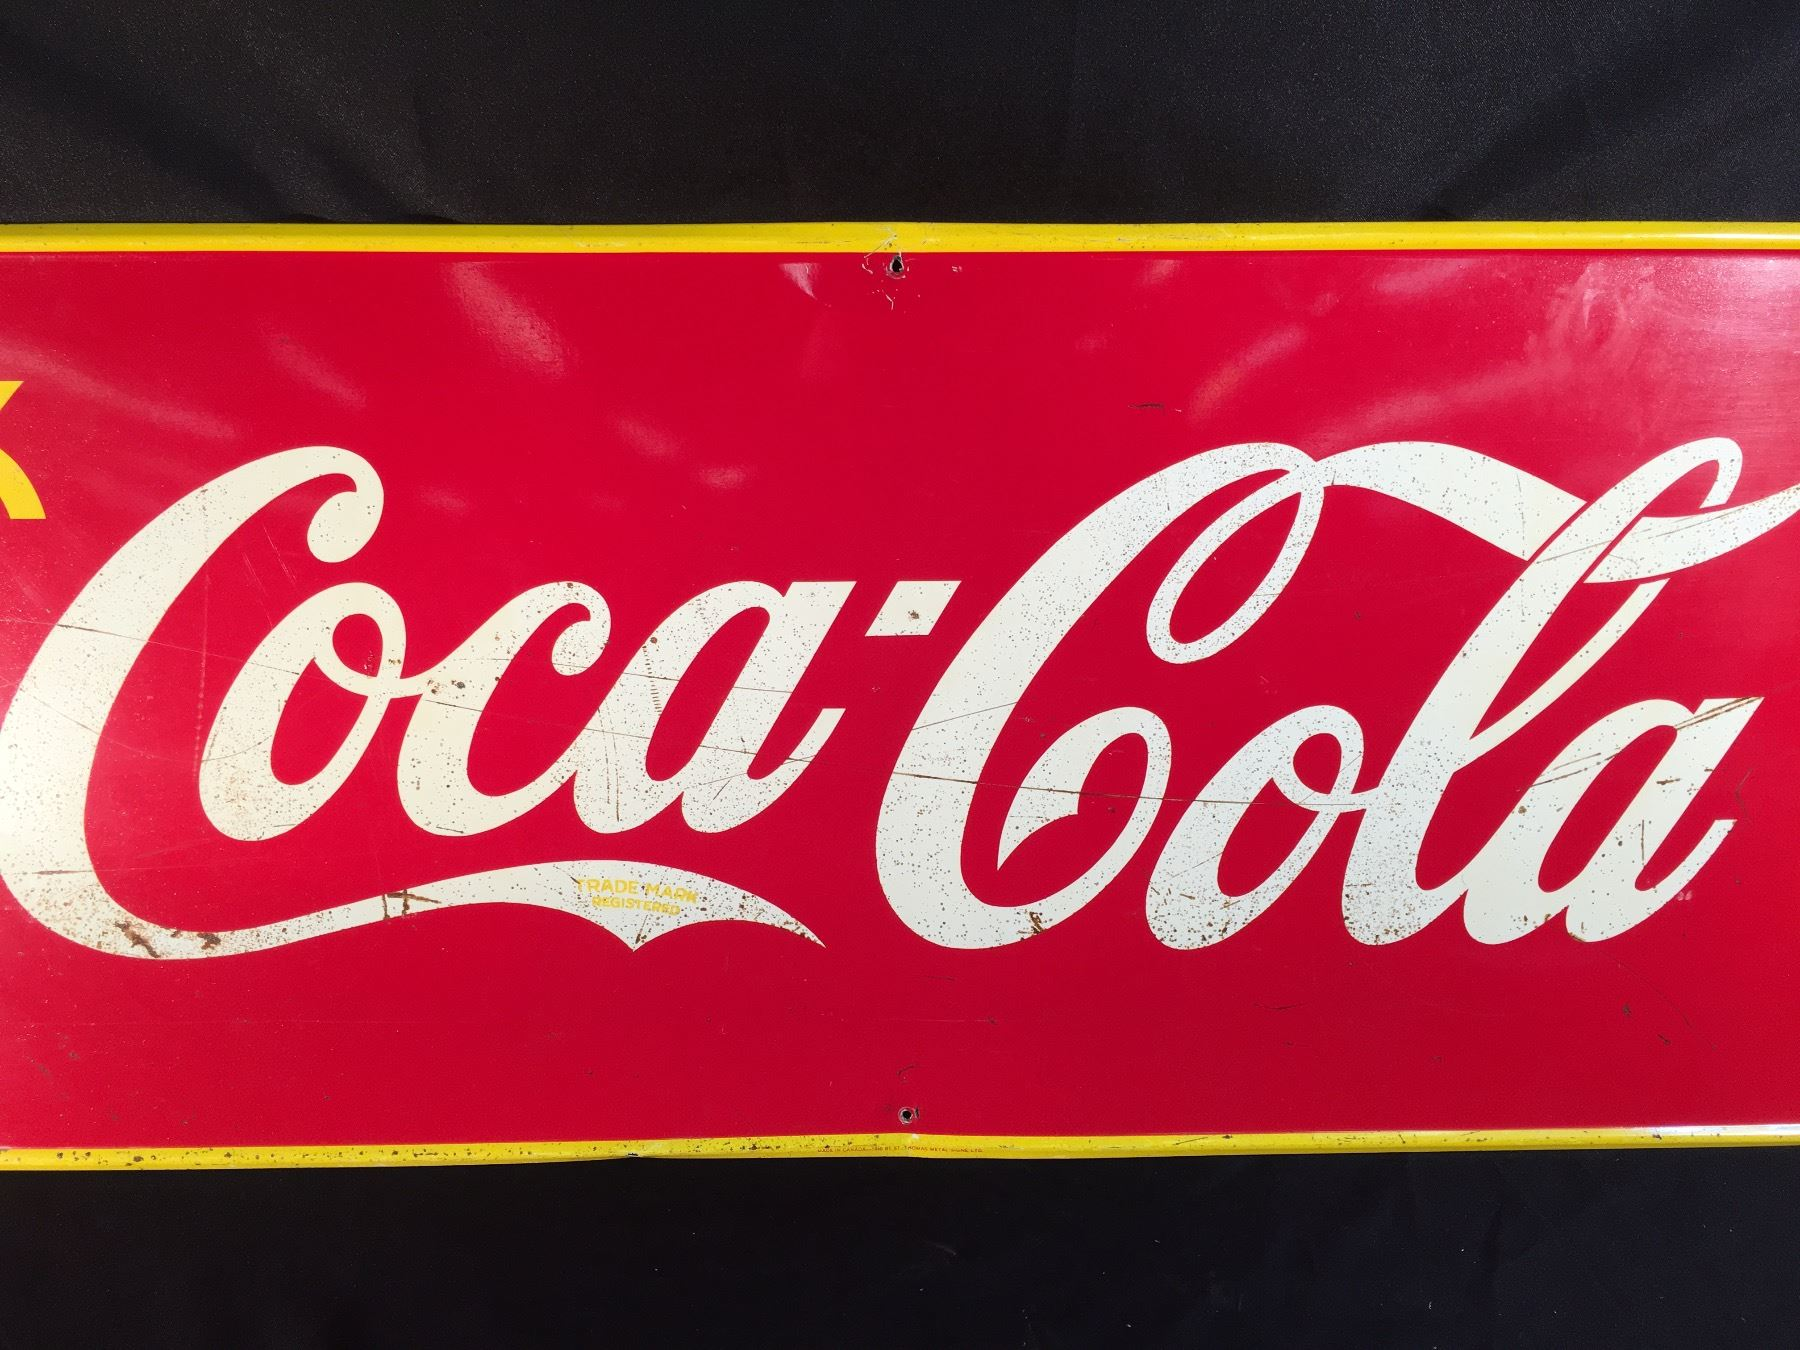 VINTAGE COCA-COLA ADVERTISING SIGN, MADE IN CANADA IN 1940